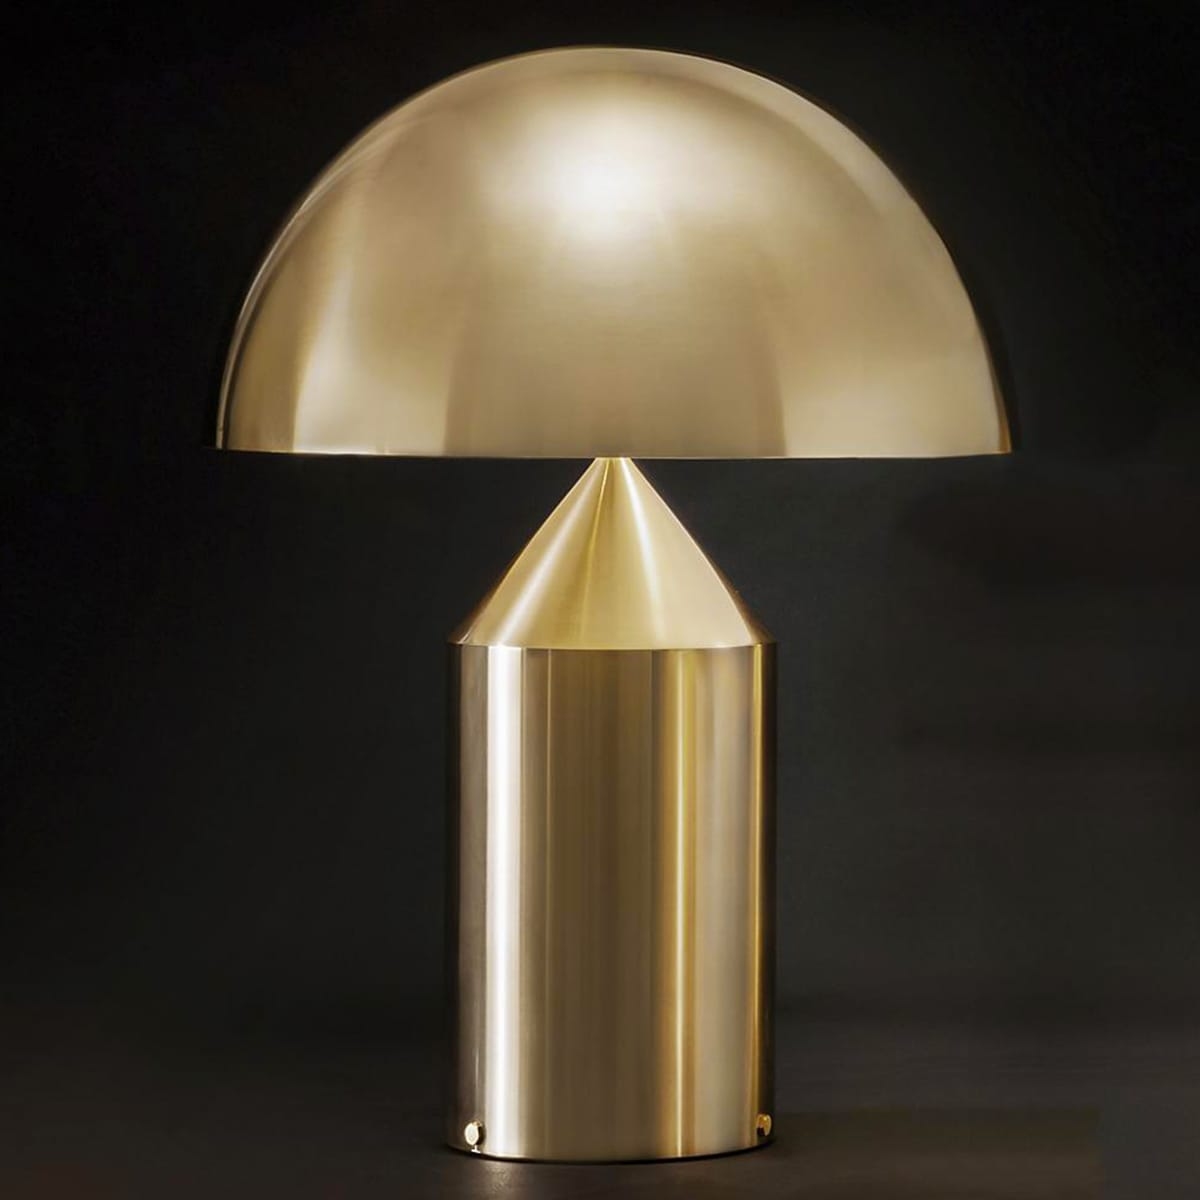 Atollo Table Lamp by Oluce.